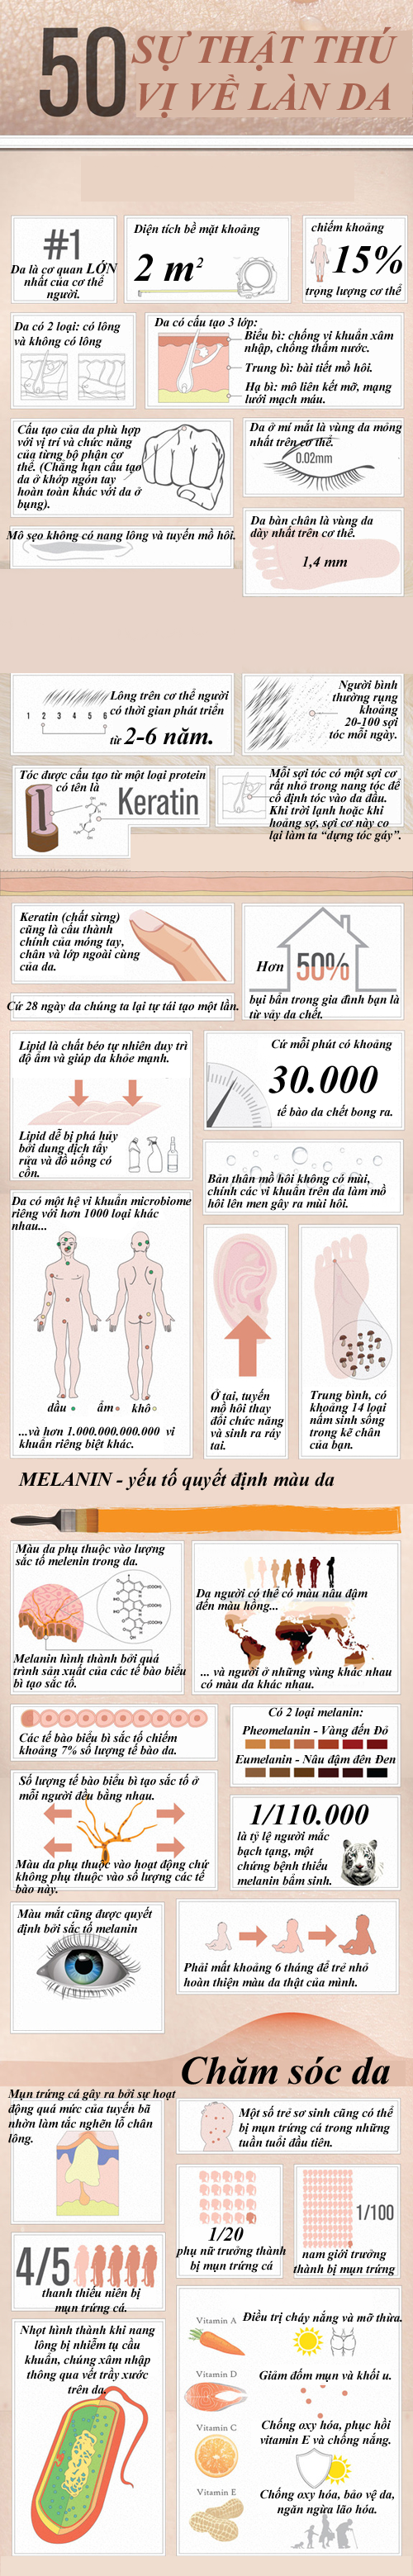 http://m.f13.img.vnecdn.net/2014/03/29/skin-infographic-directory-com-5602-7956-1396054928.png